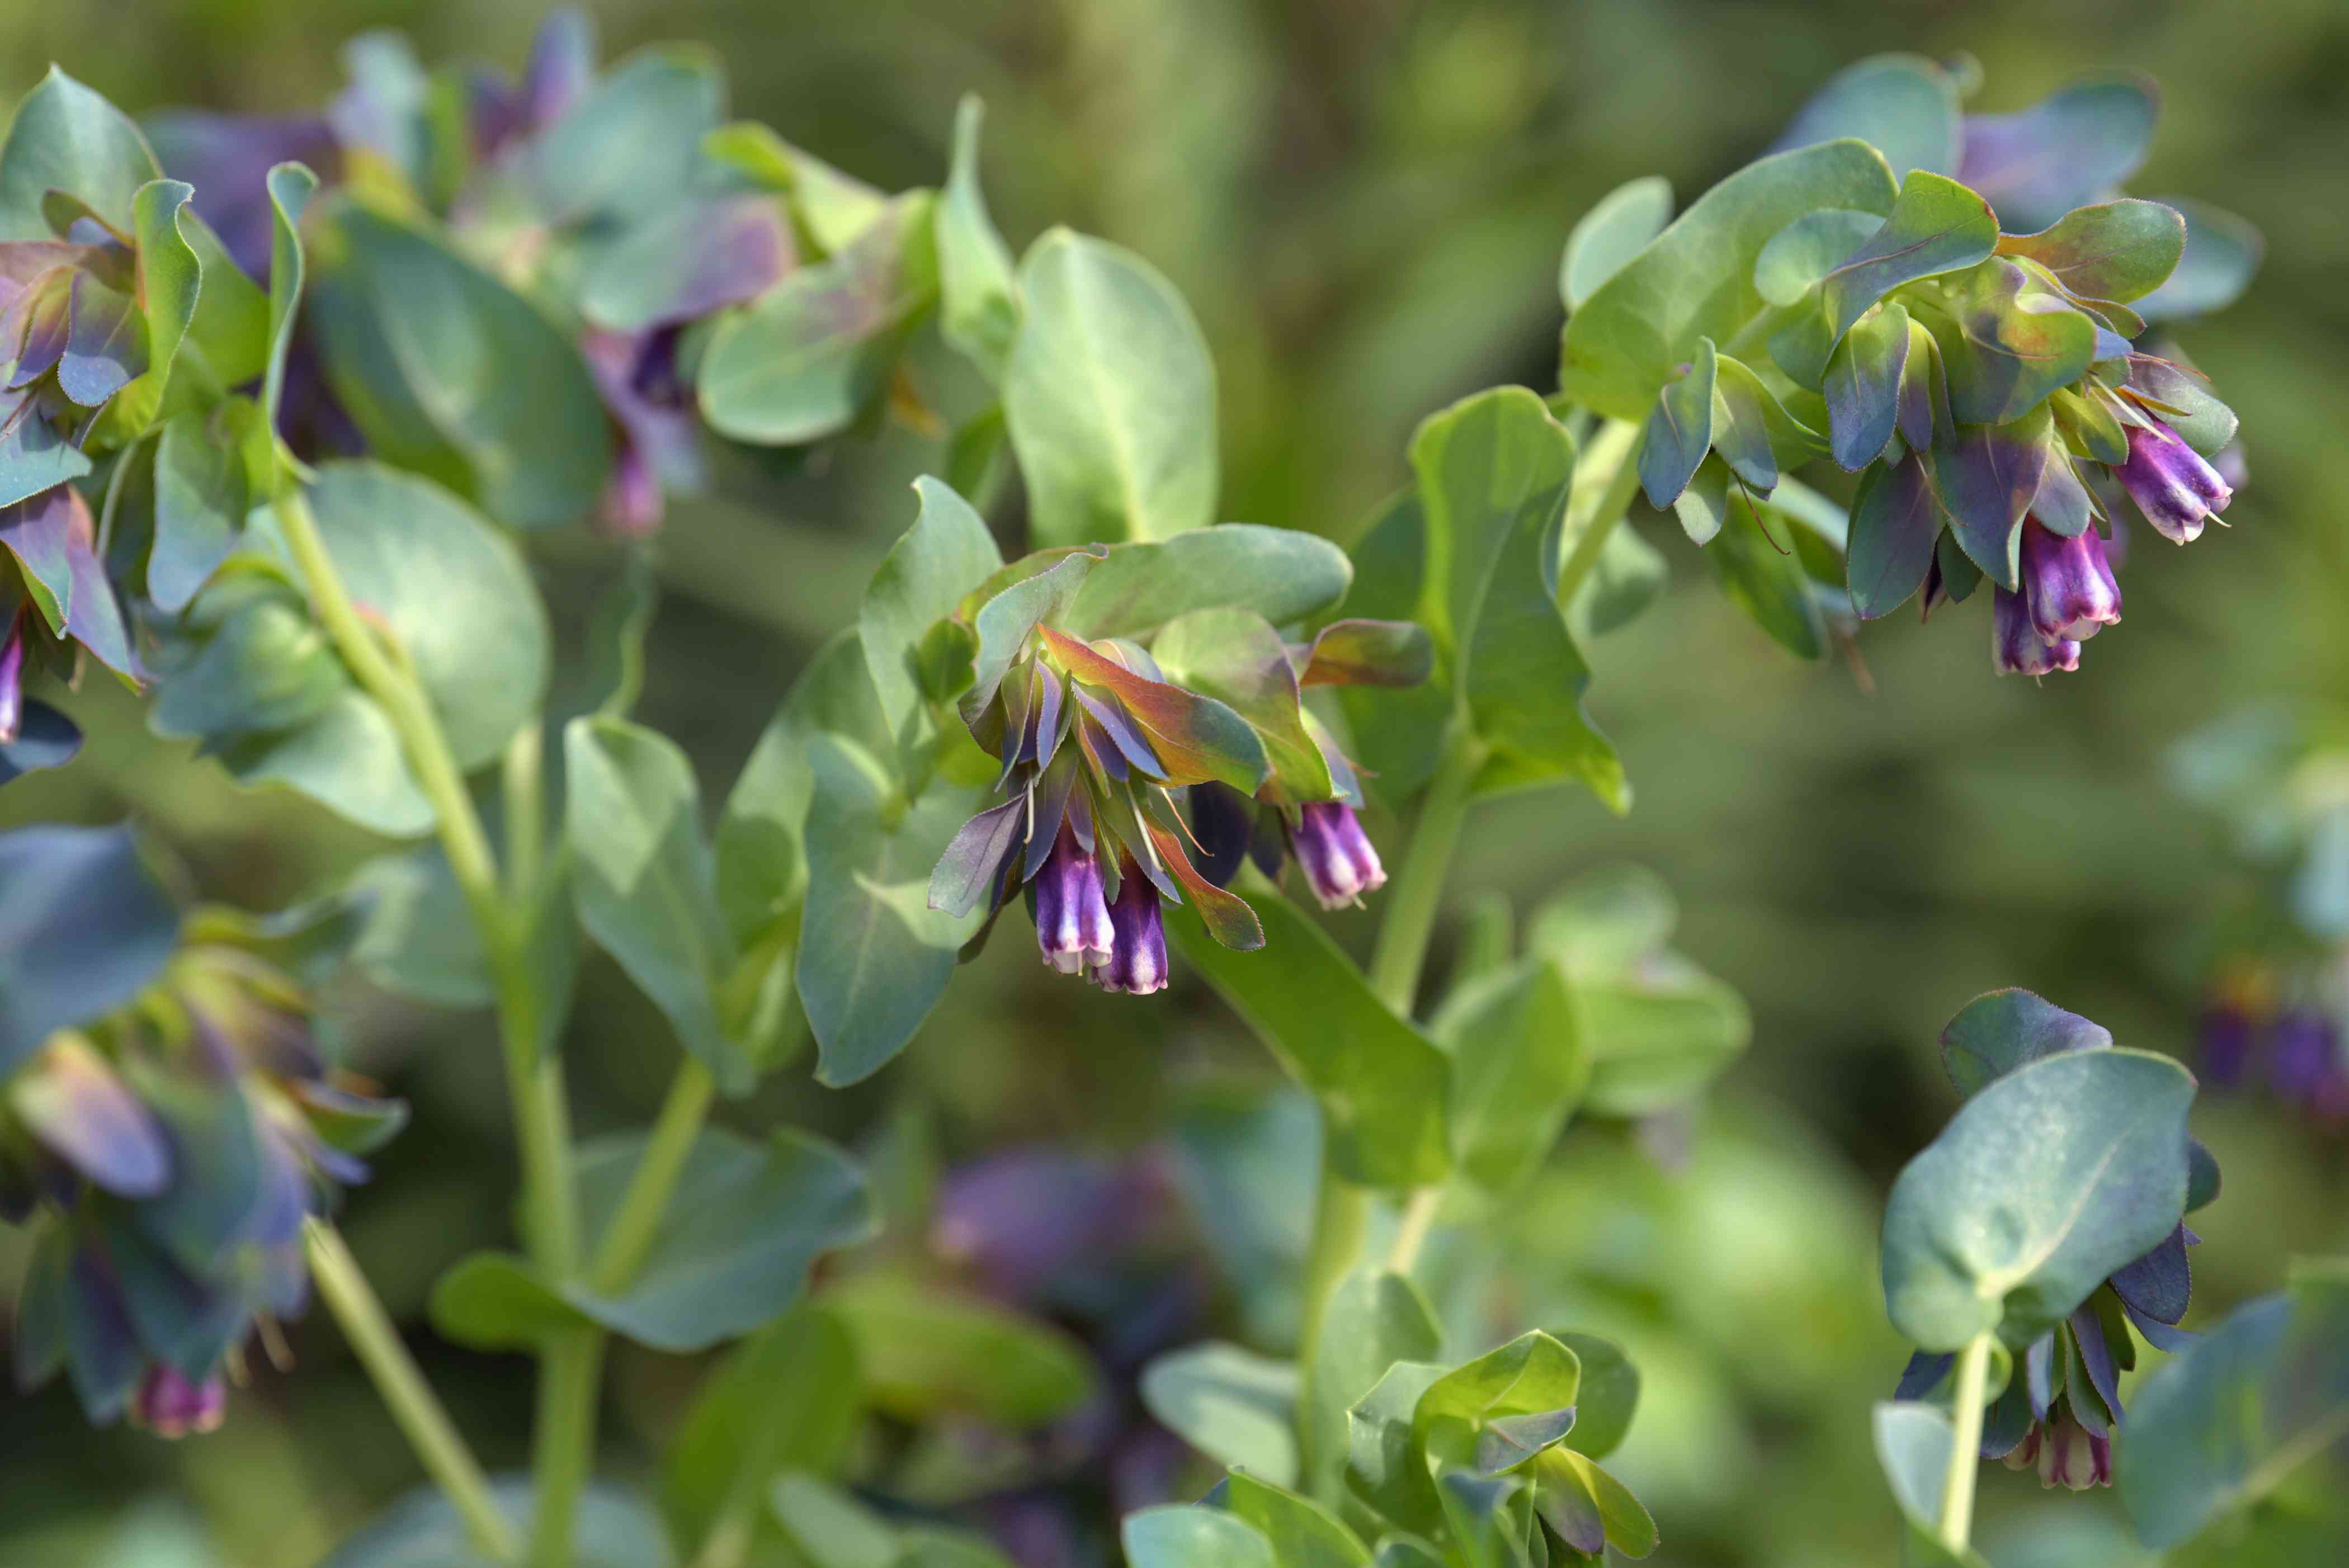 Honeywort plant with blue-gray rounded leaves surrounding purple bell-shaped flowers on stems